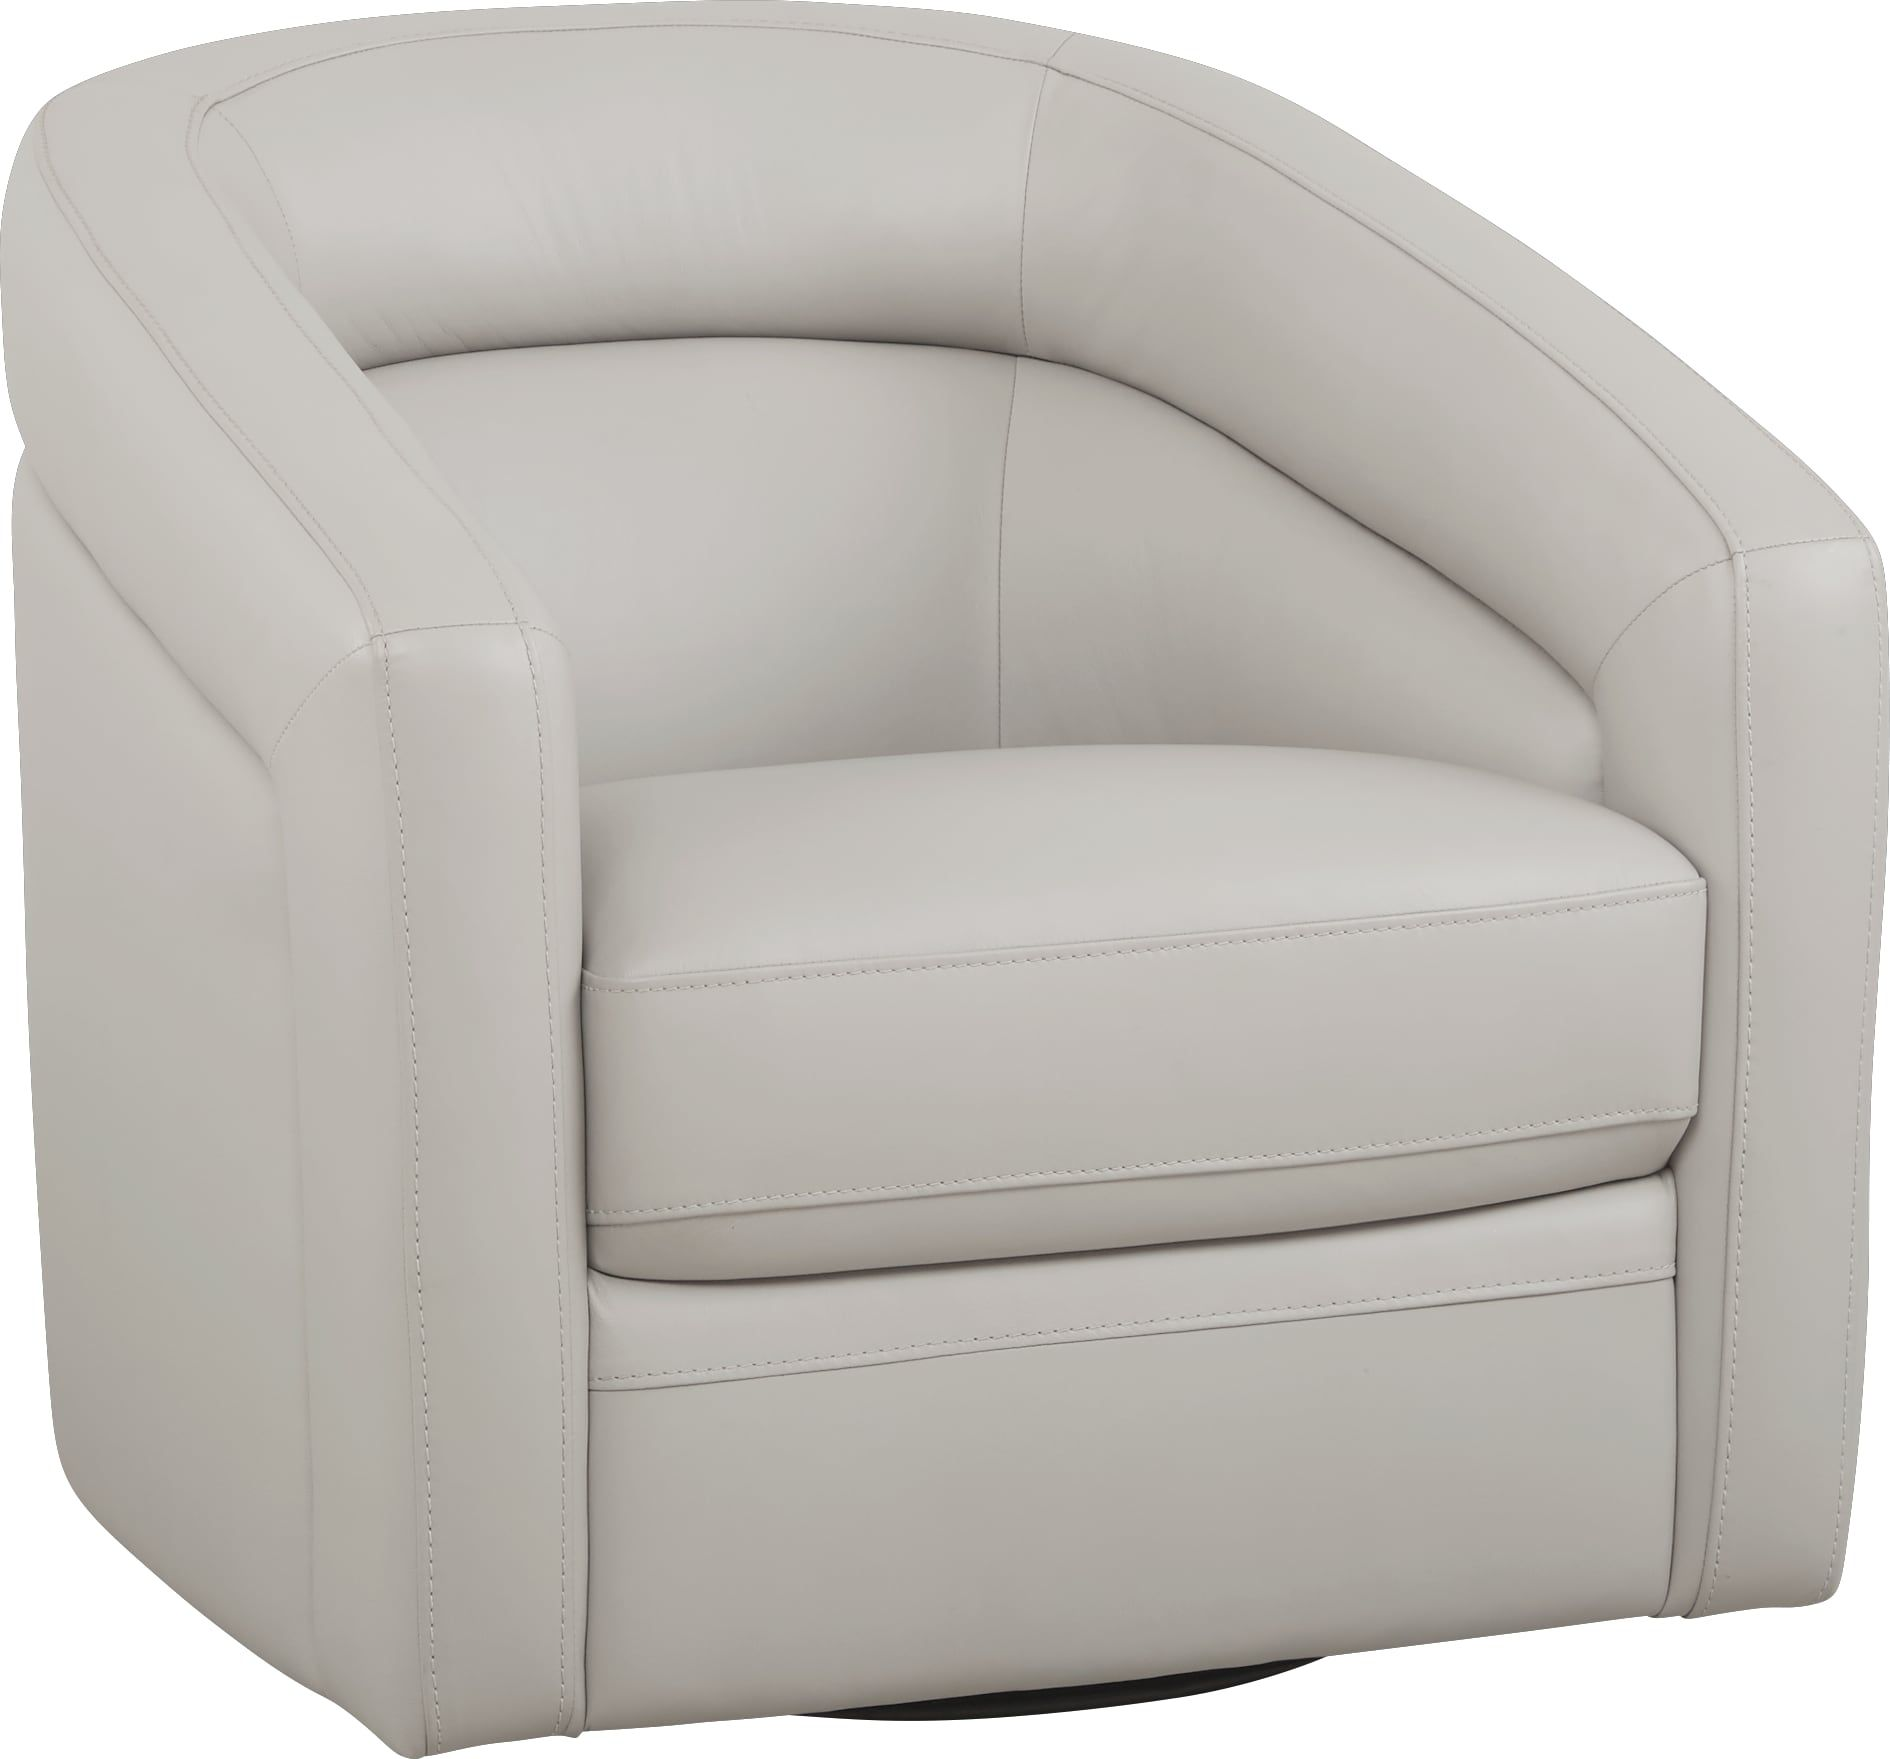 Modena Gray Leather Swivel Chair With